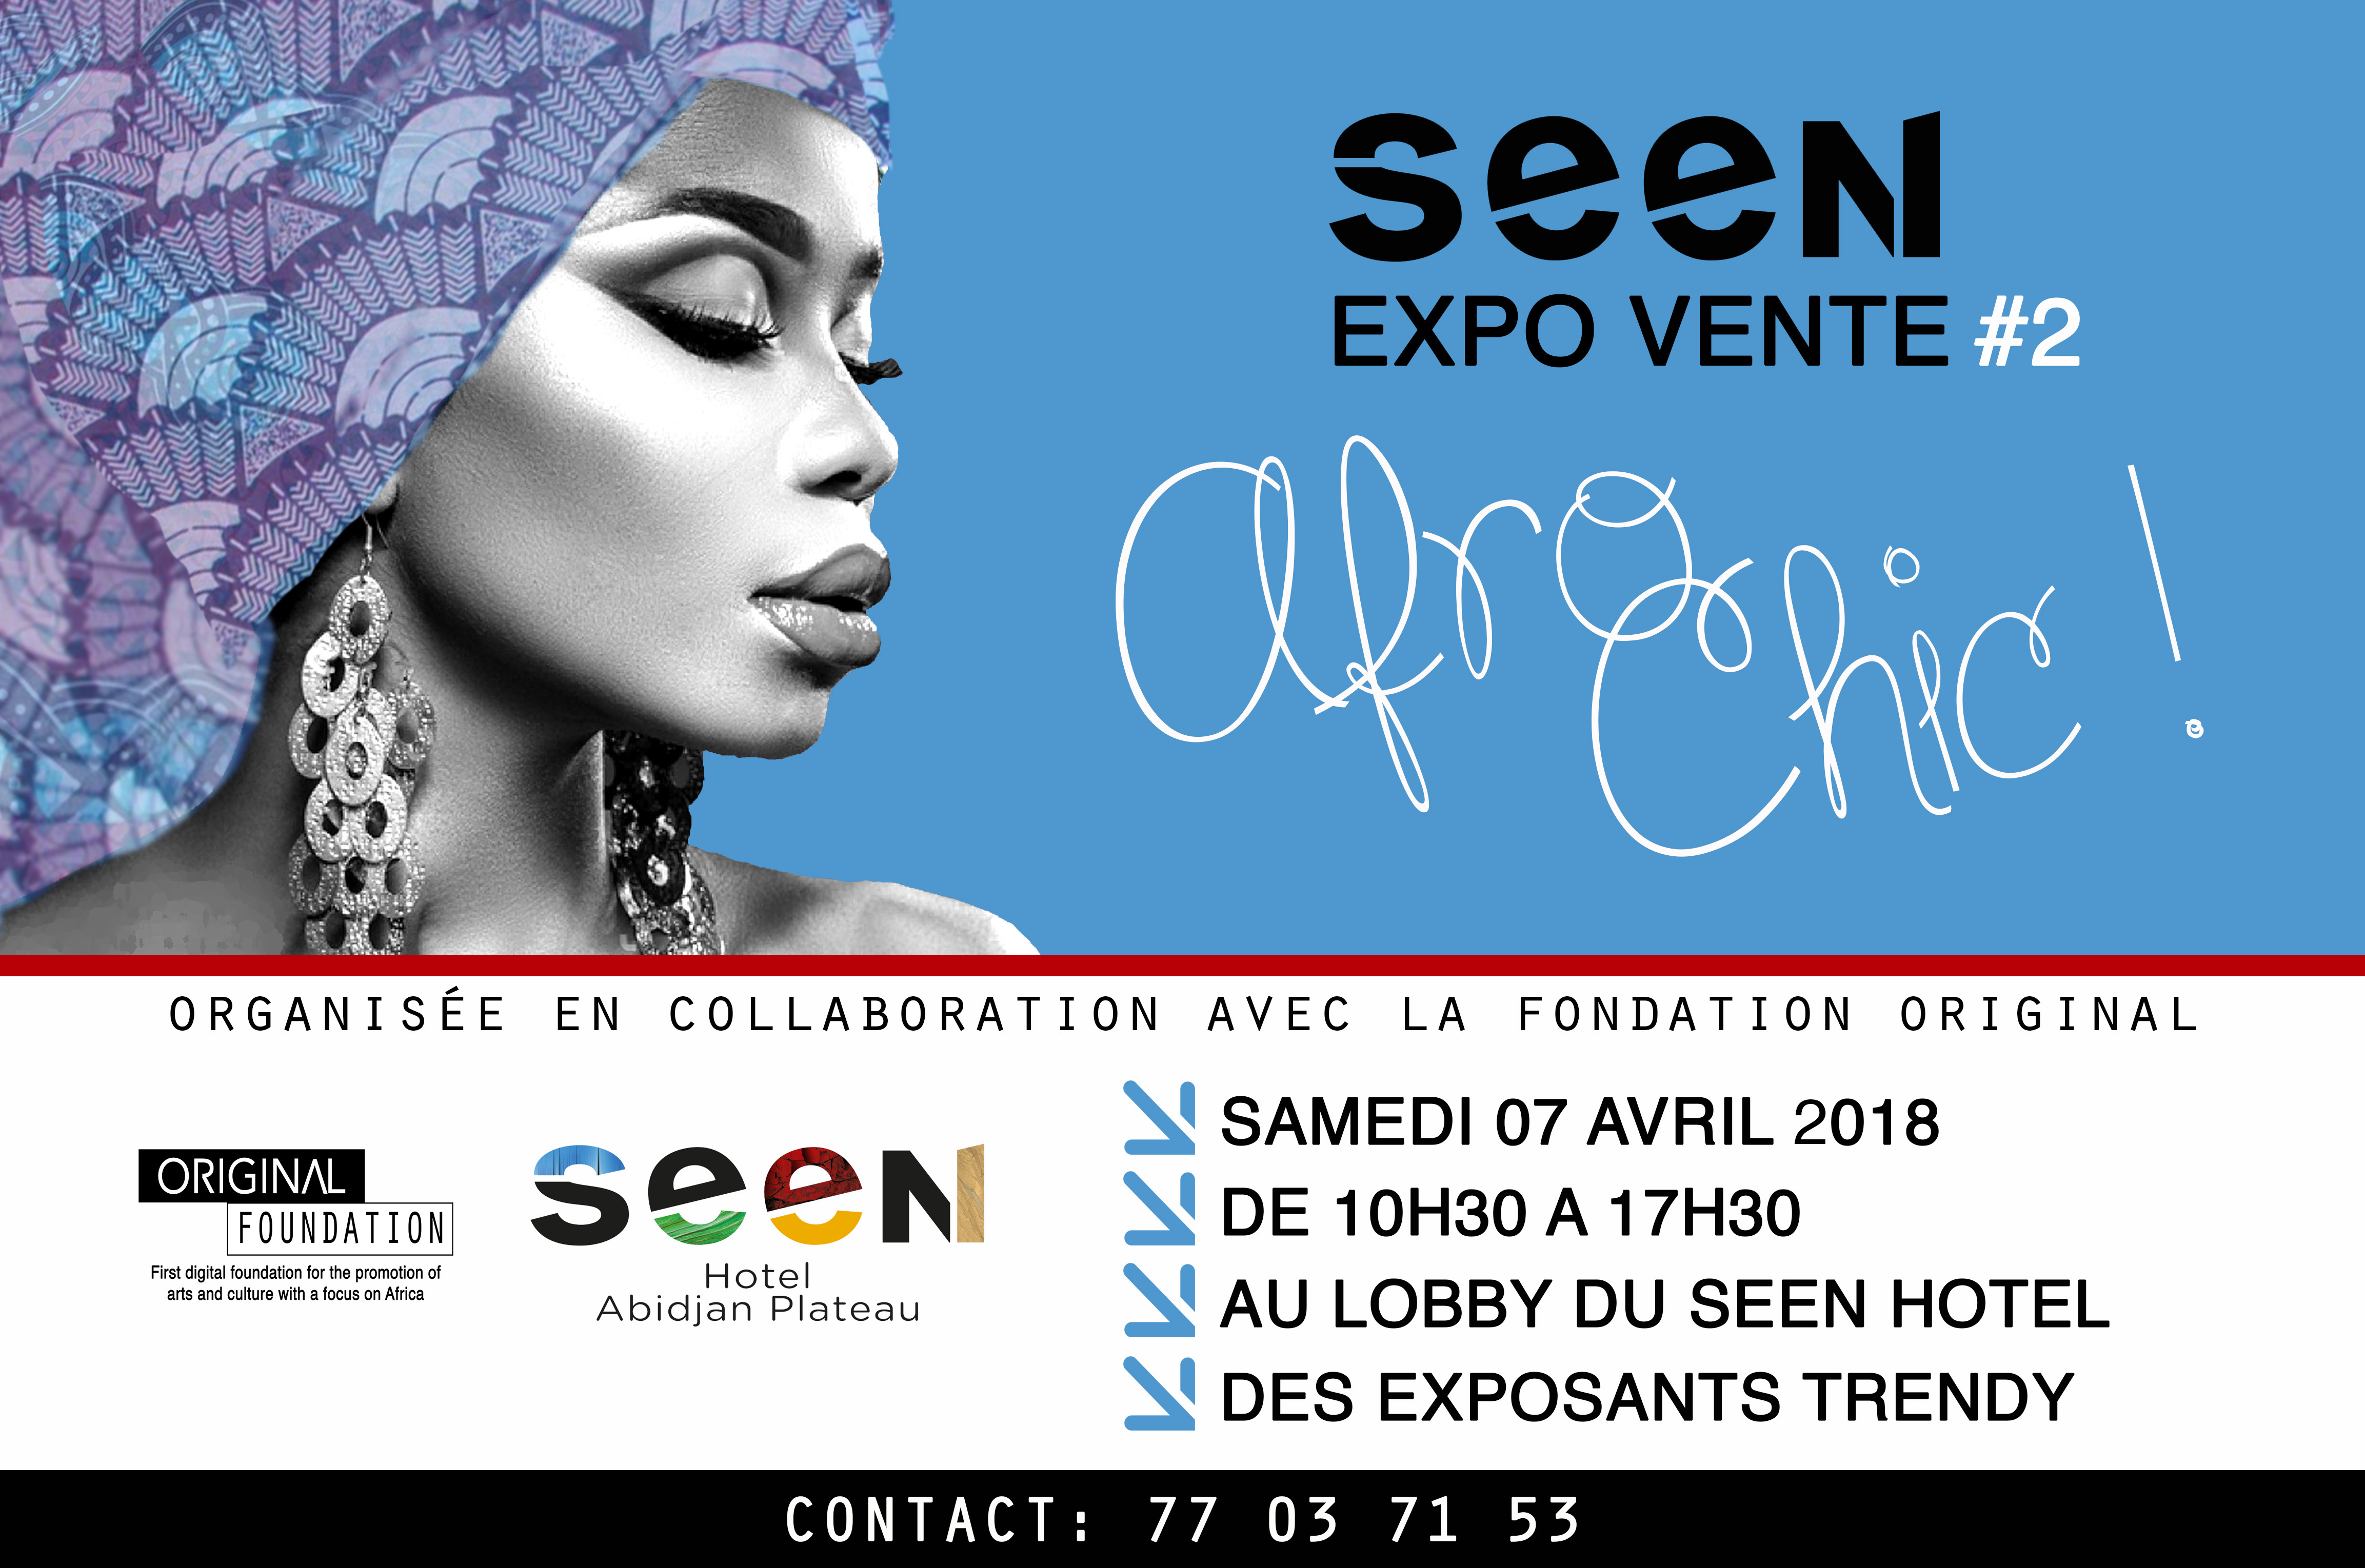 5 raisons de venir à la Seen Expo Vente Afro Chic #2